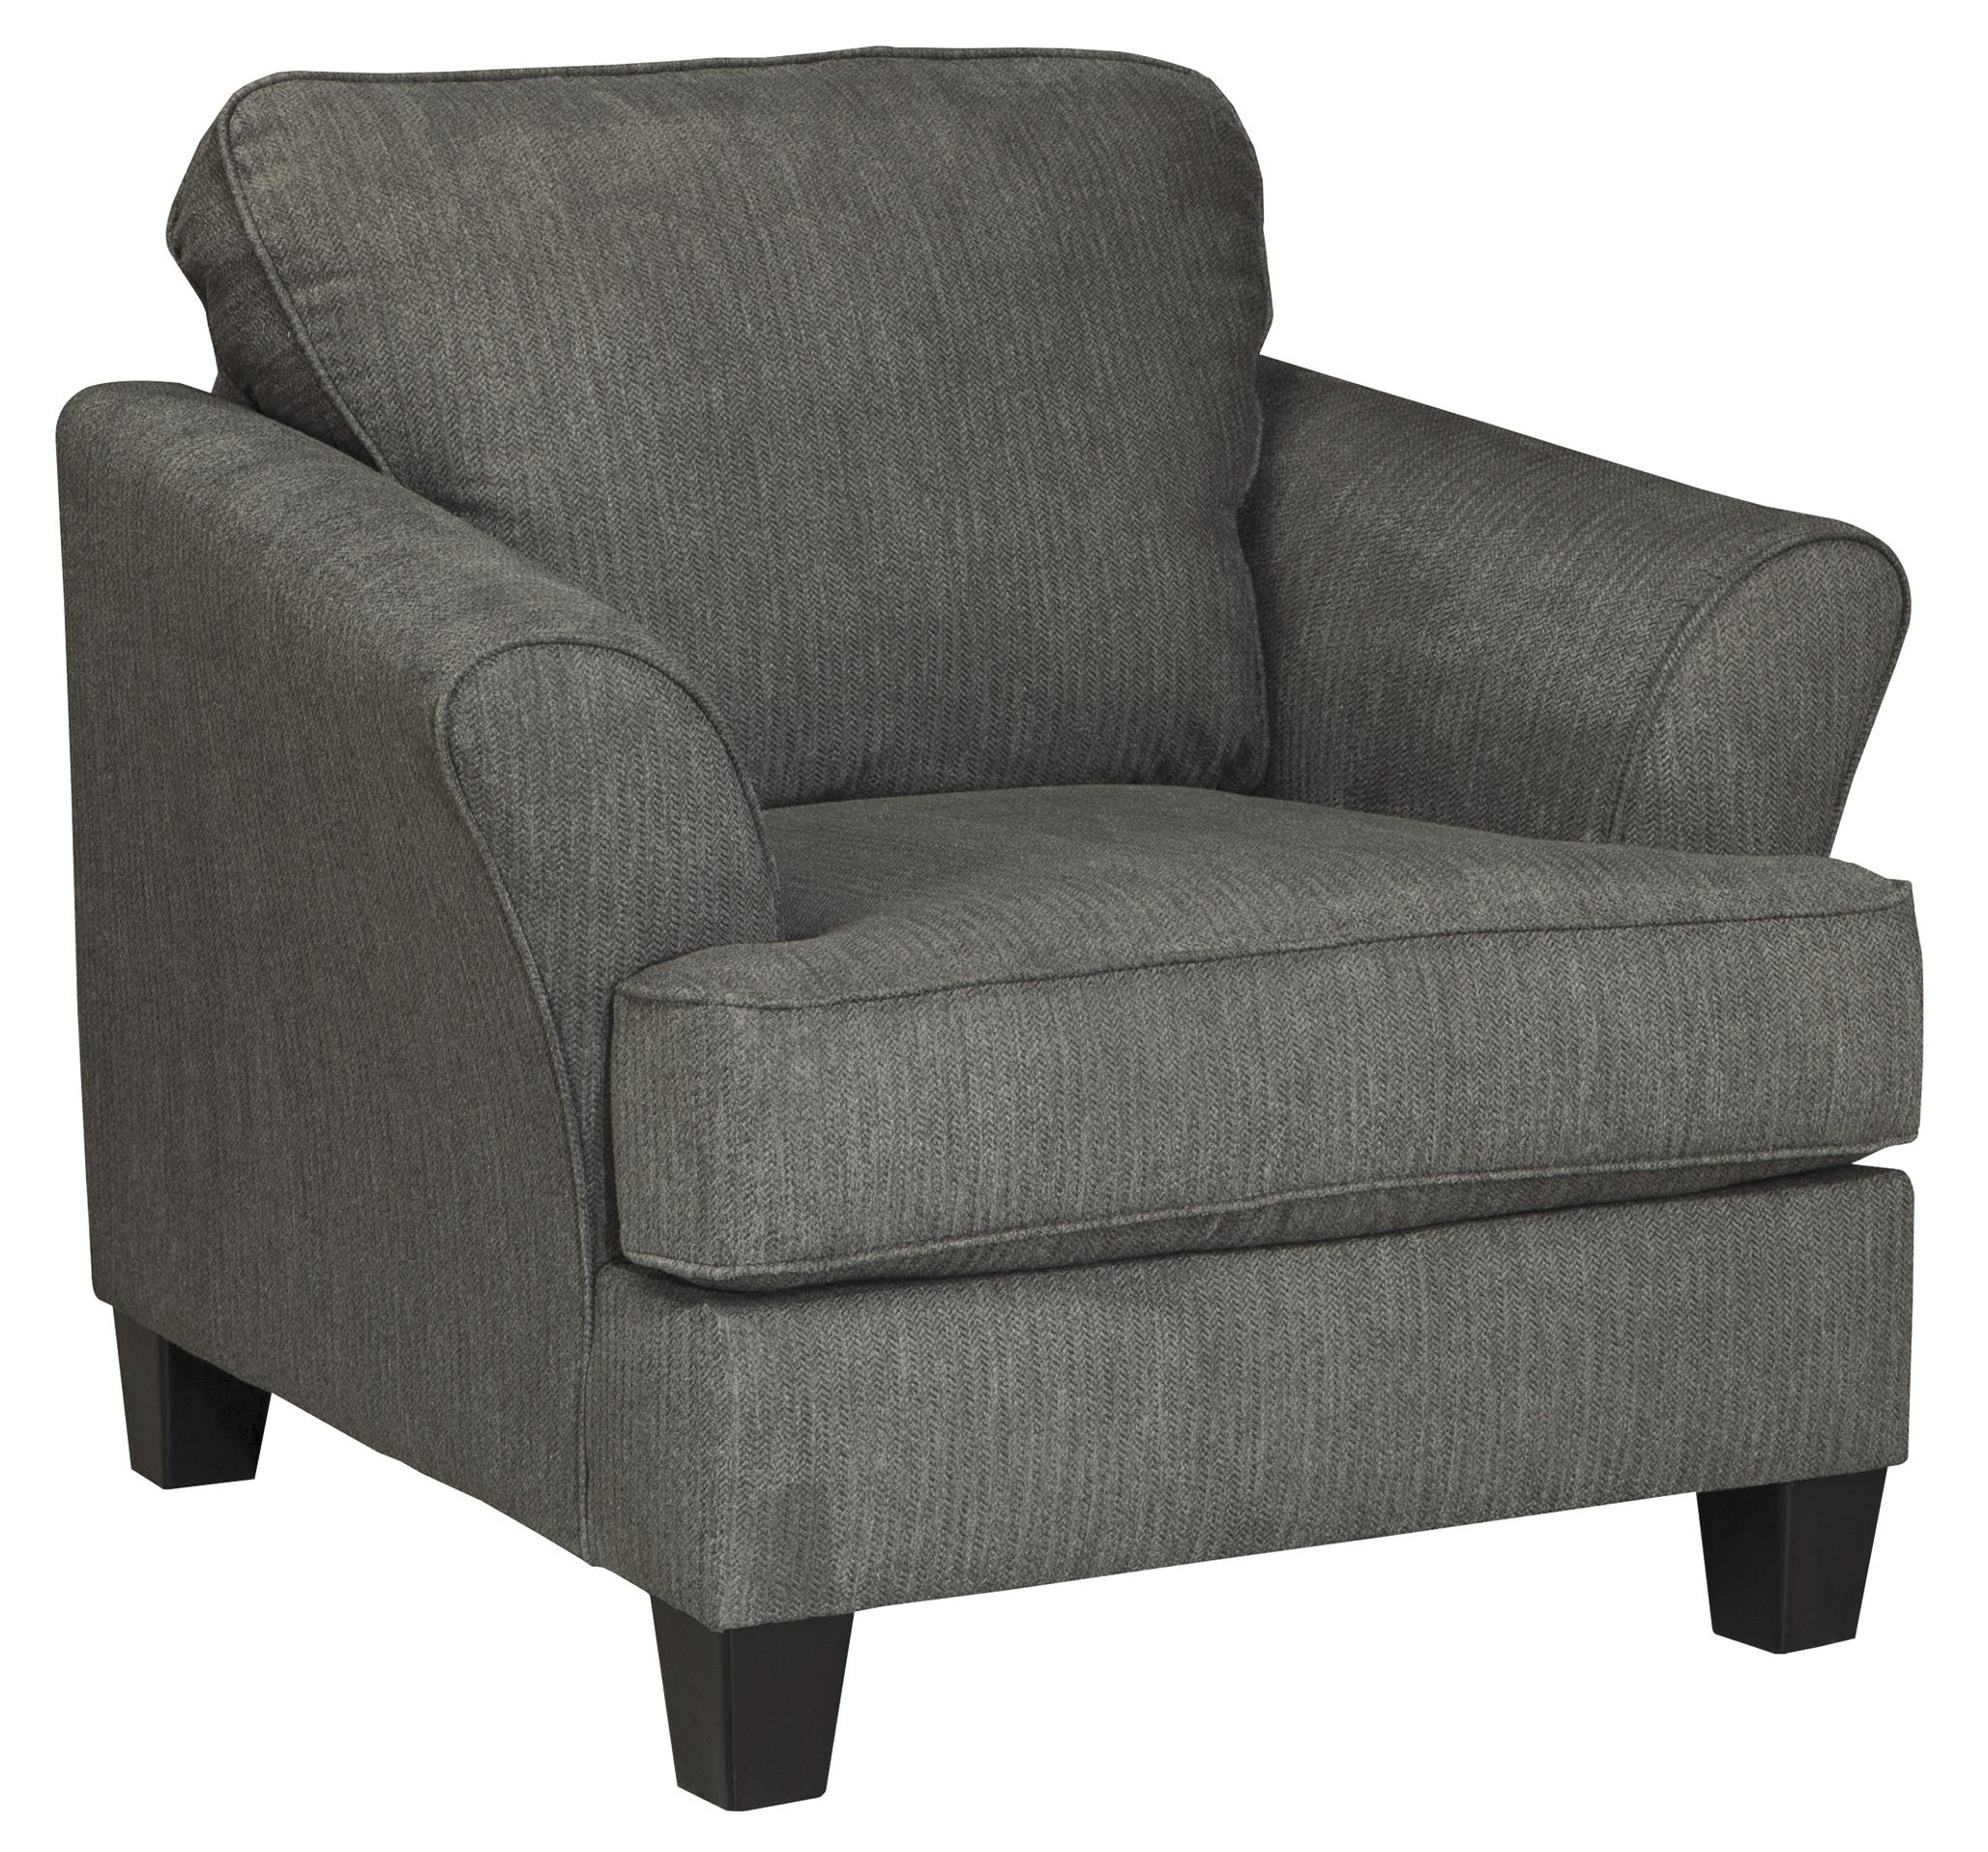 Ashley/Benchcraft Gayler Chair - Item Number: 4120120